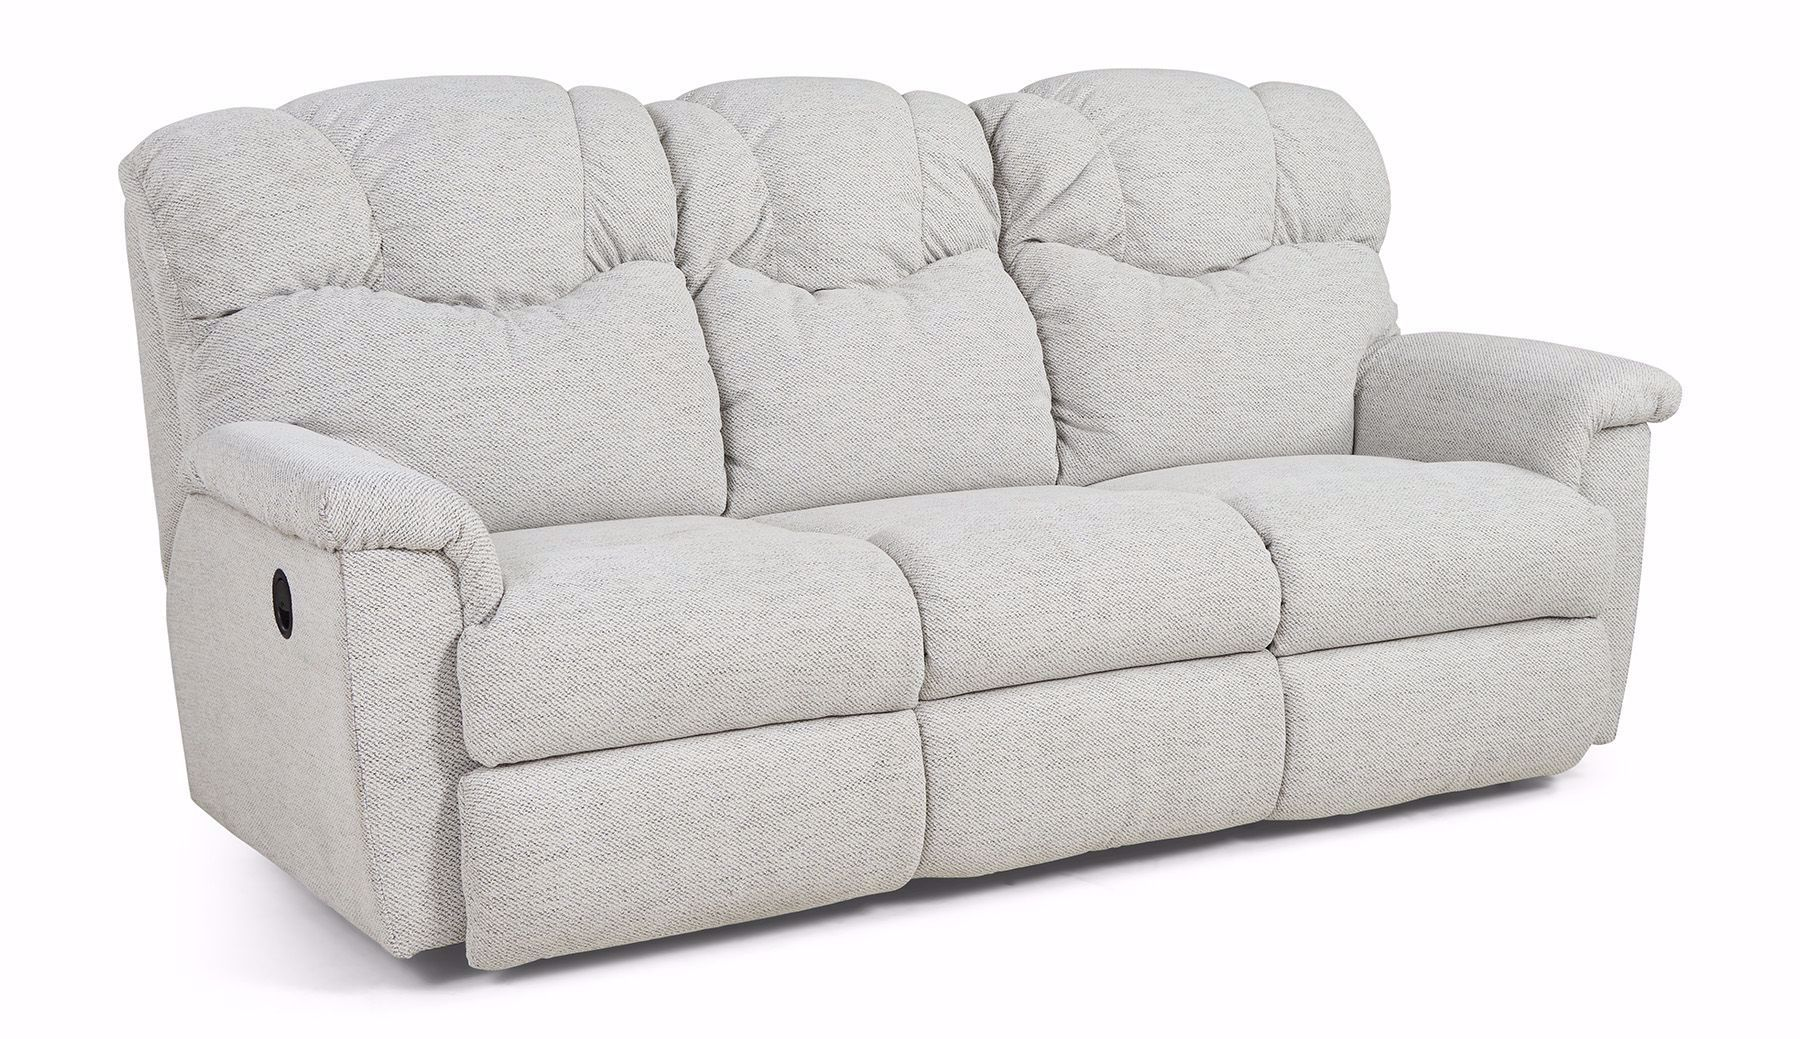 Picture of Lancer Reclining Sofa Dove